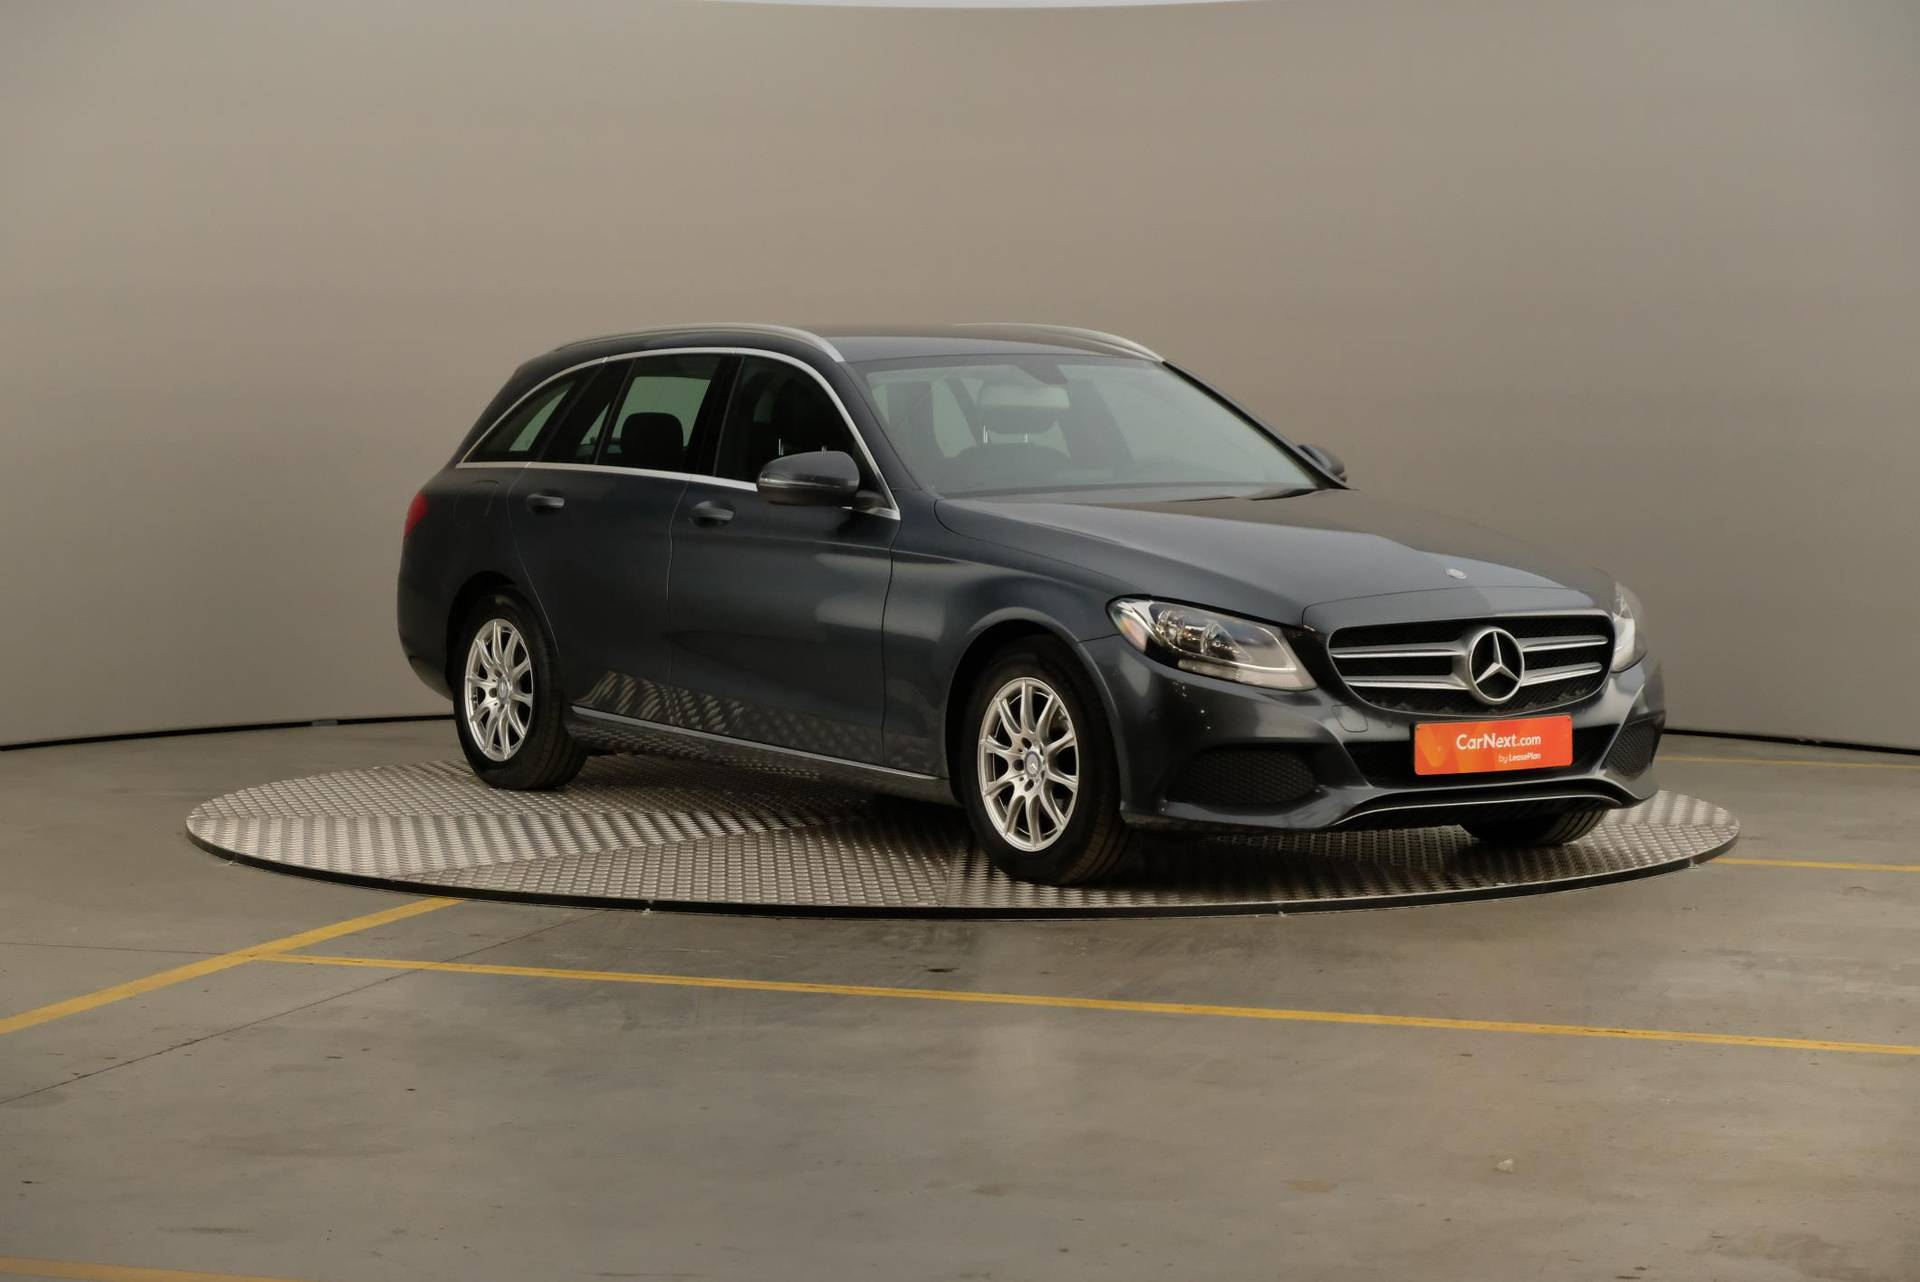 Mercedes-Benz C-Klasse 180 d PACK AVANTGARDE PACK EASY GPS PDC TREKHAAK EURO 6.., 360-image28